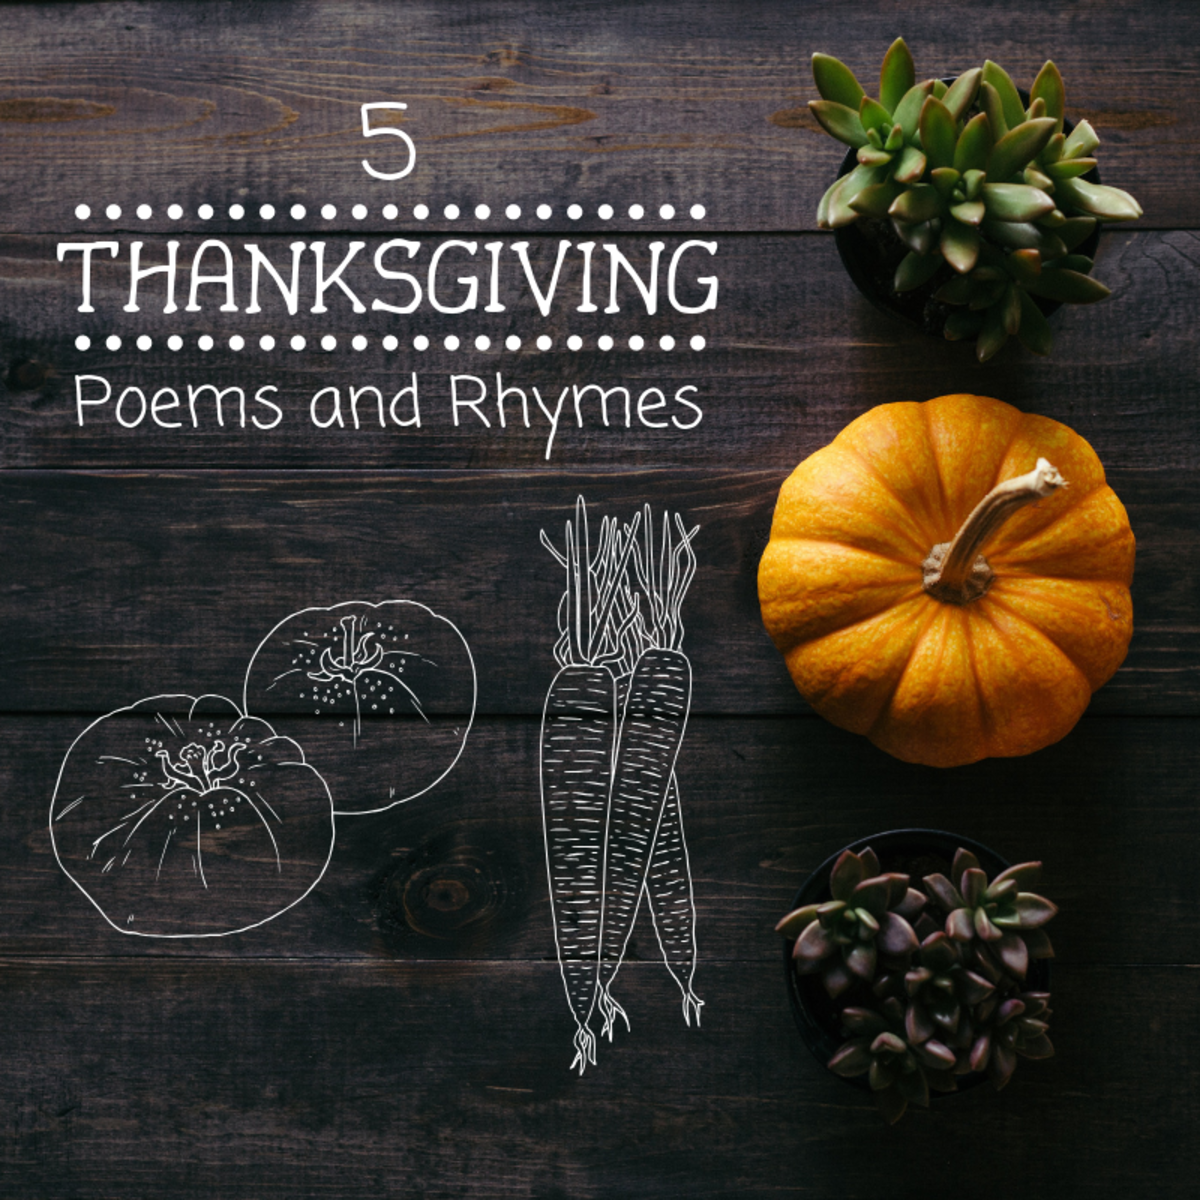 5 Thanksgiving Poems and Rhymes